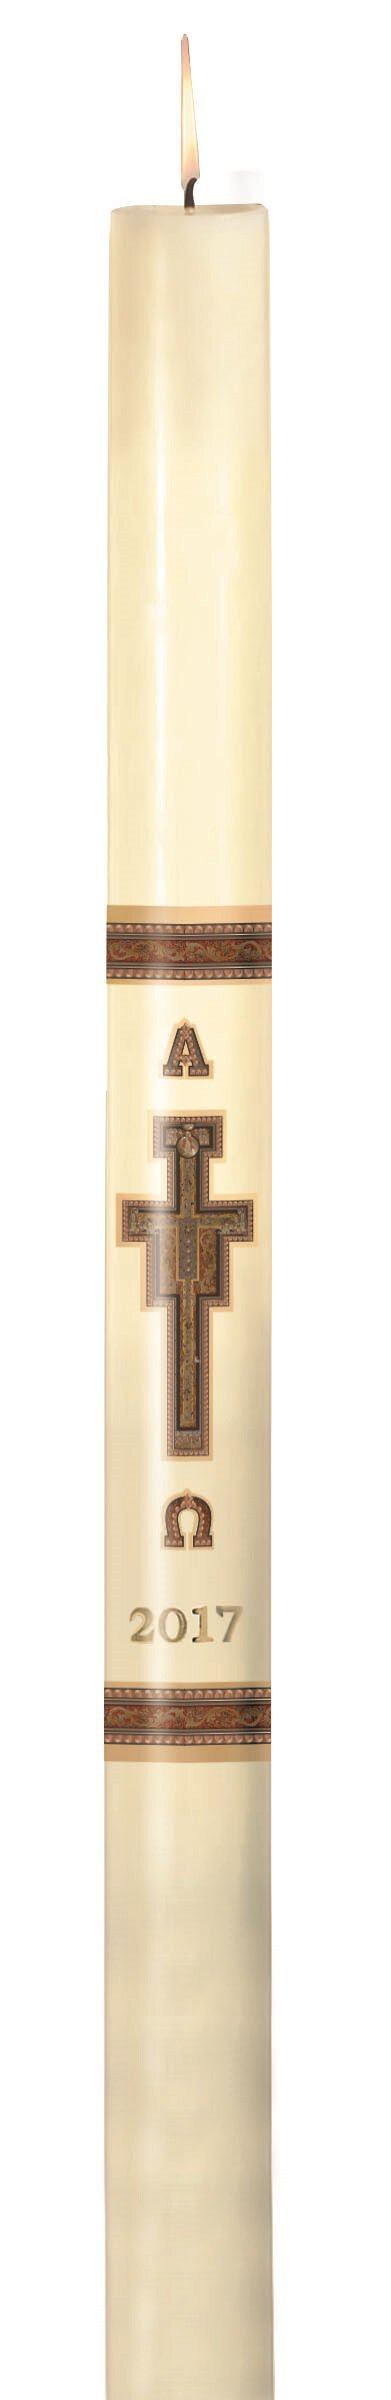 No 3 Special San Damiano Paschal Candle